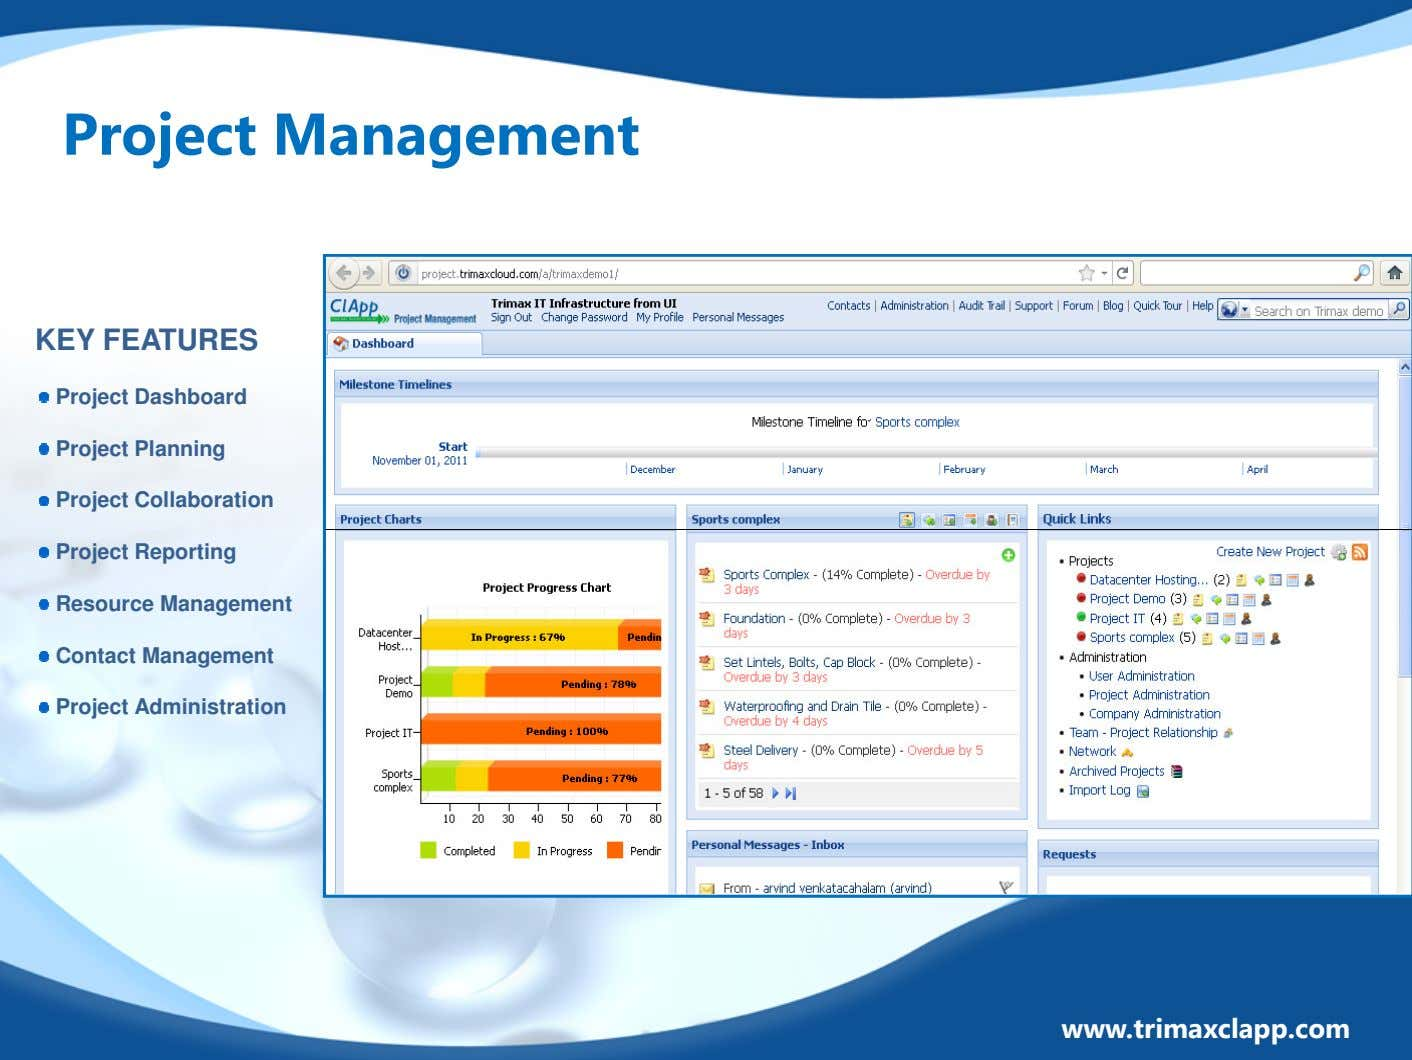 Project Management KEY FEATURES Project Dashboard Project Planning Project Collaboration Project Reporting Resource